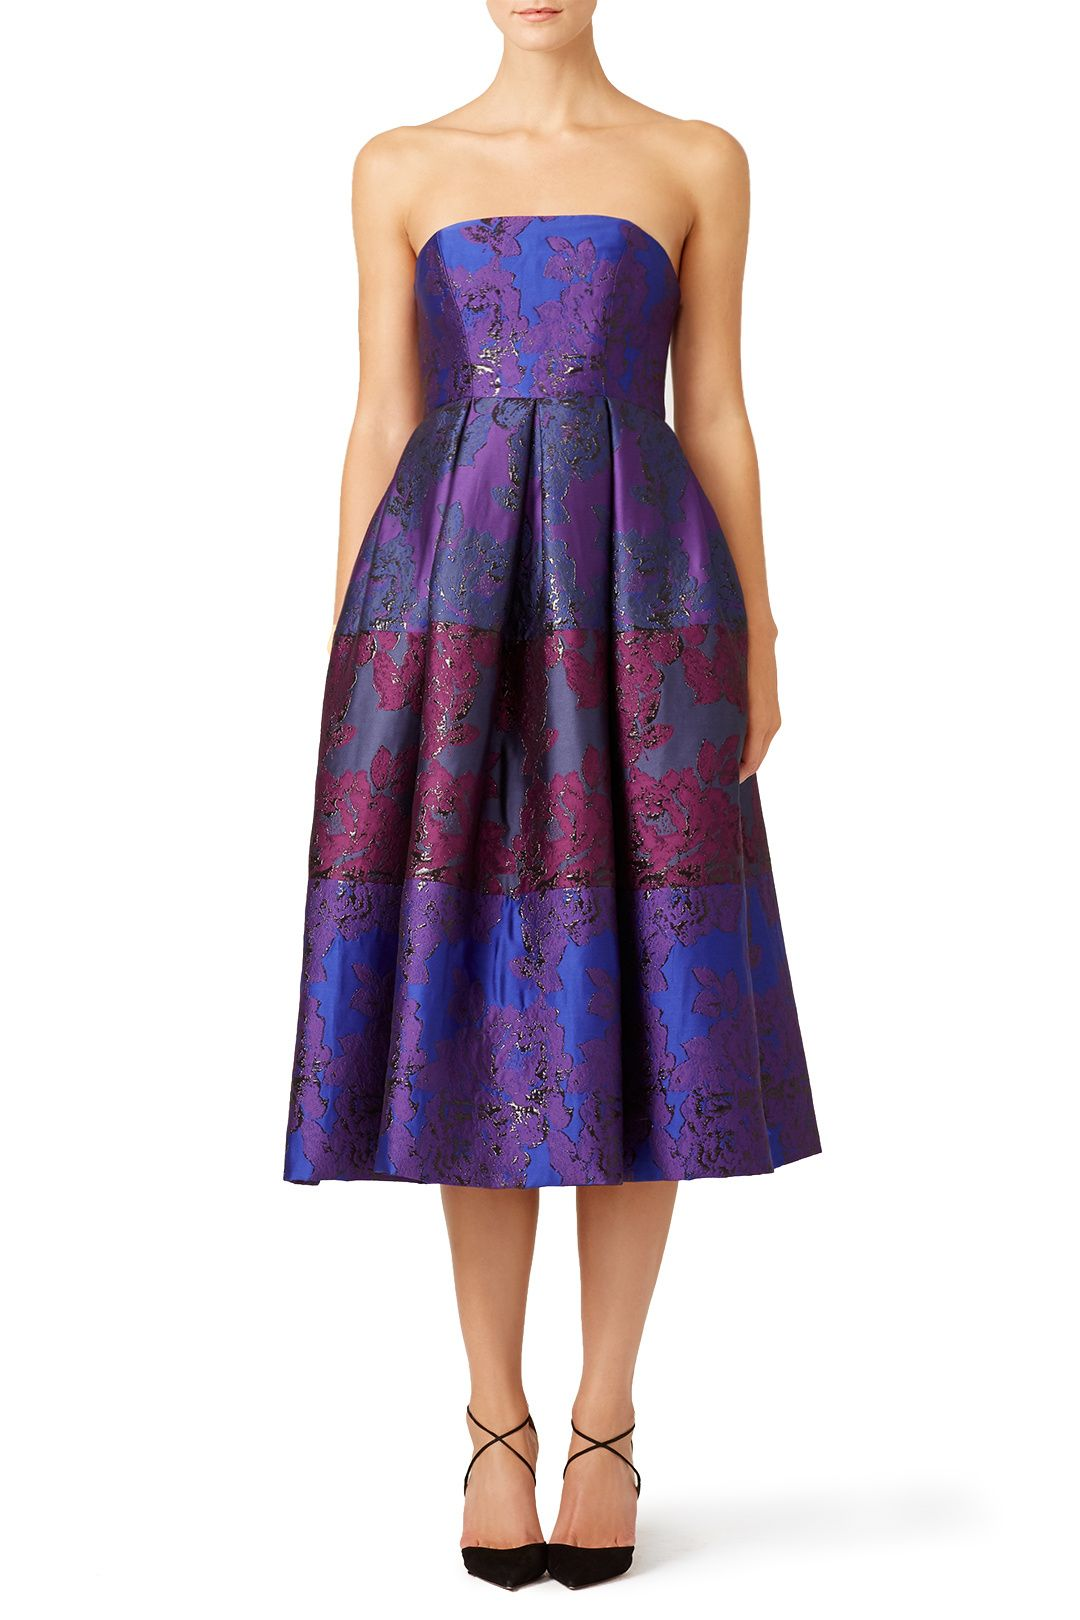 Where can i rent a wedding dress  Purple Palace Dress  Cynthia rowley Clothes and Fashion